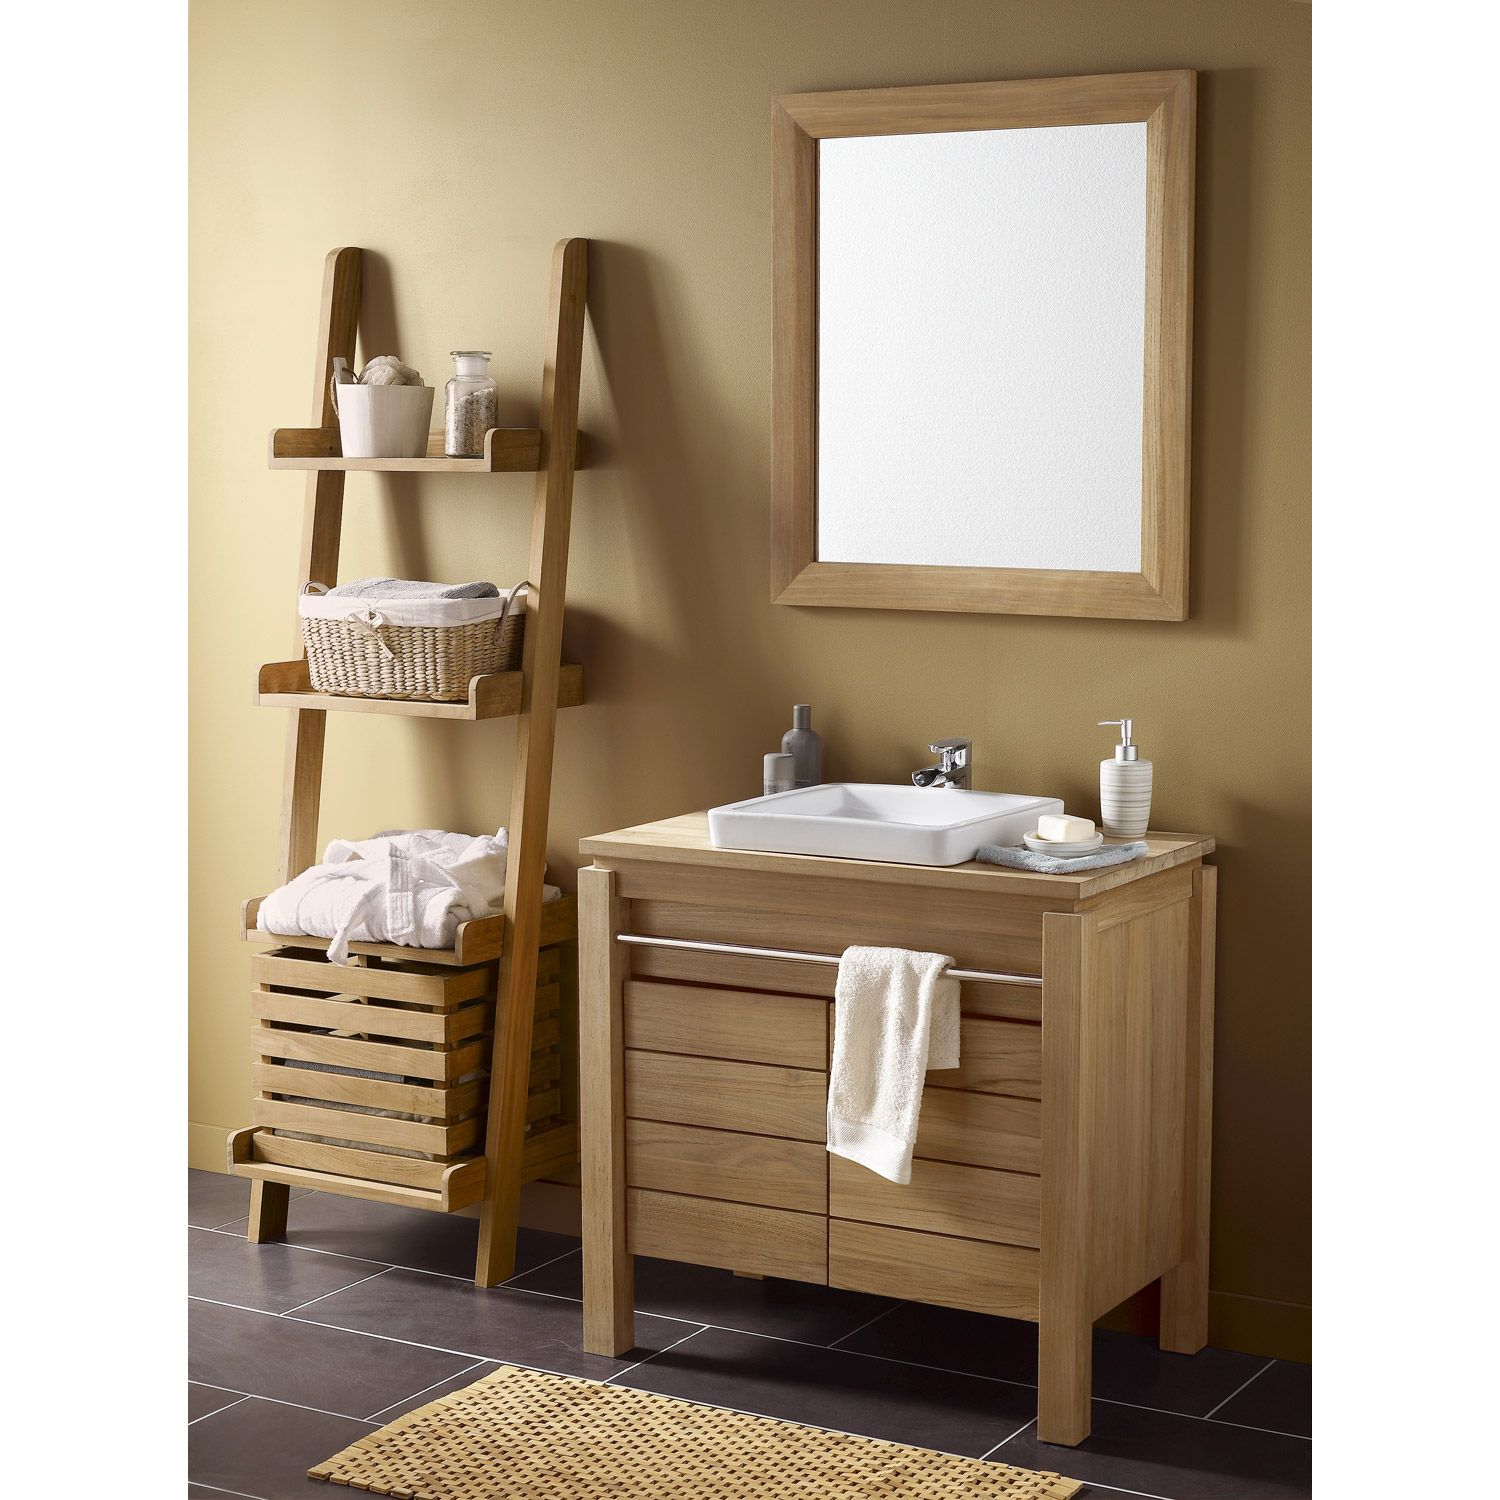 Meuble de salle de bains teck naturel born o marron for Carrelage passion